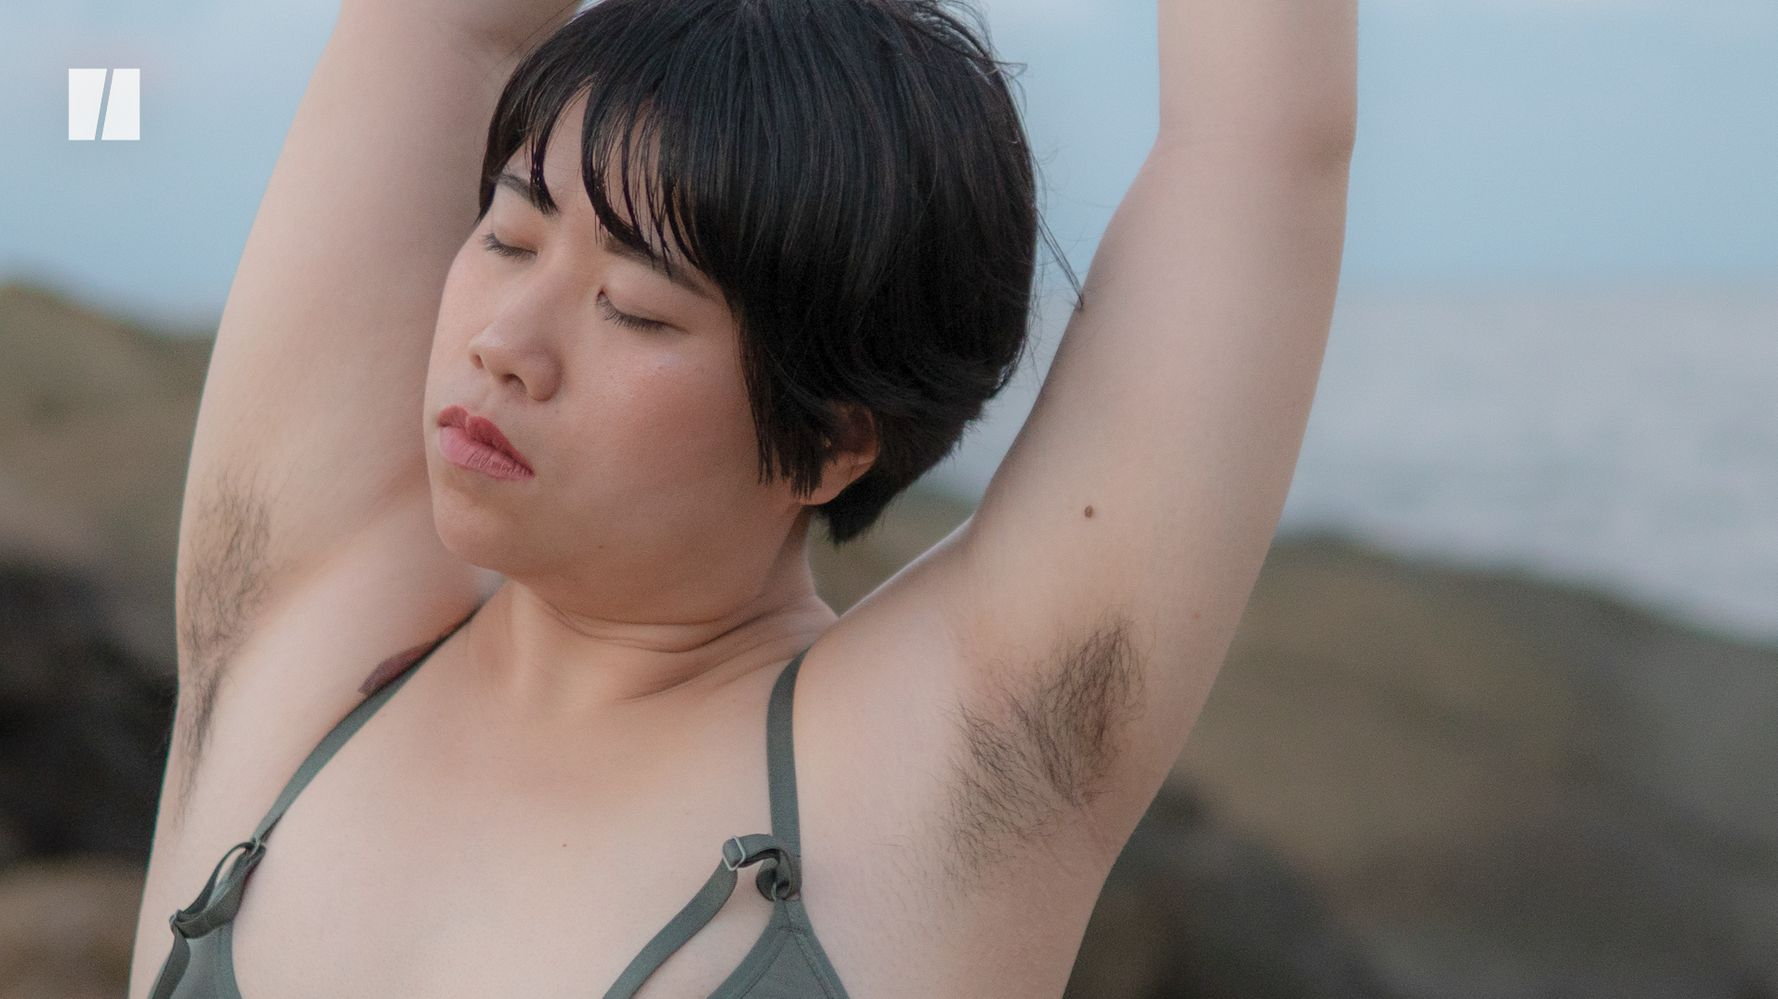 Millennial Women's Complicated Relationship With Body Hair